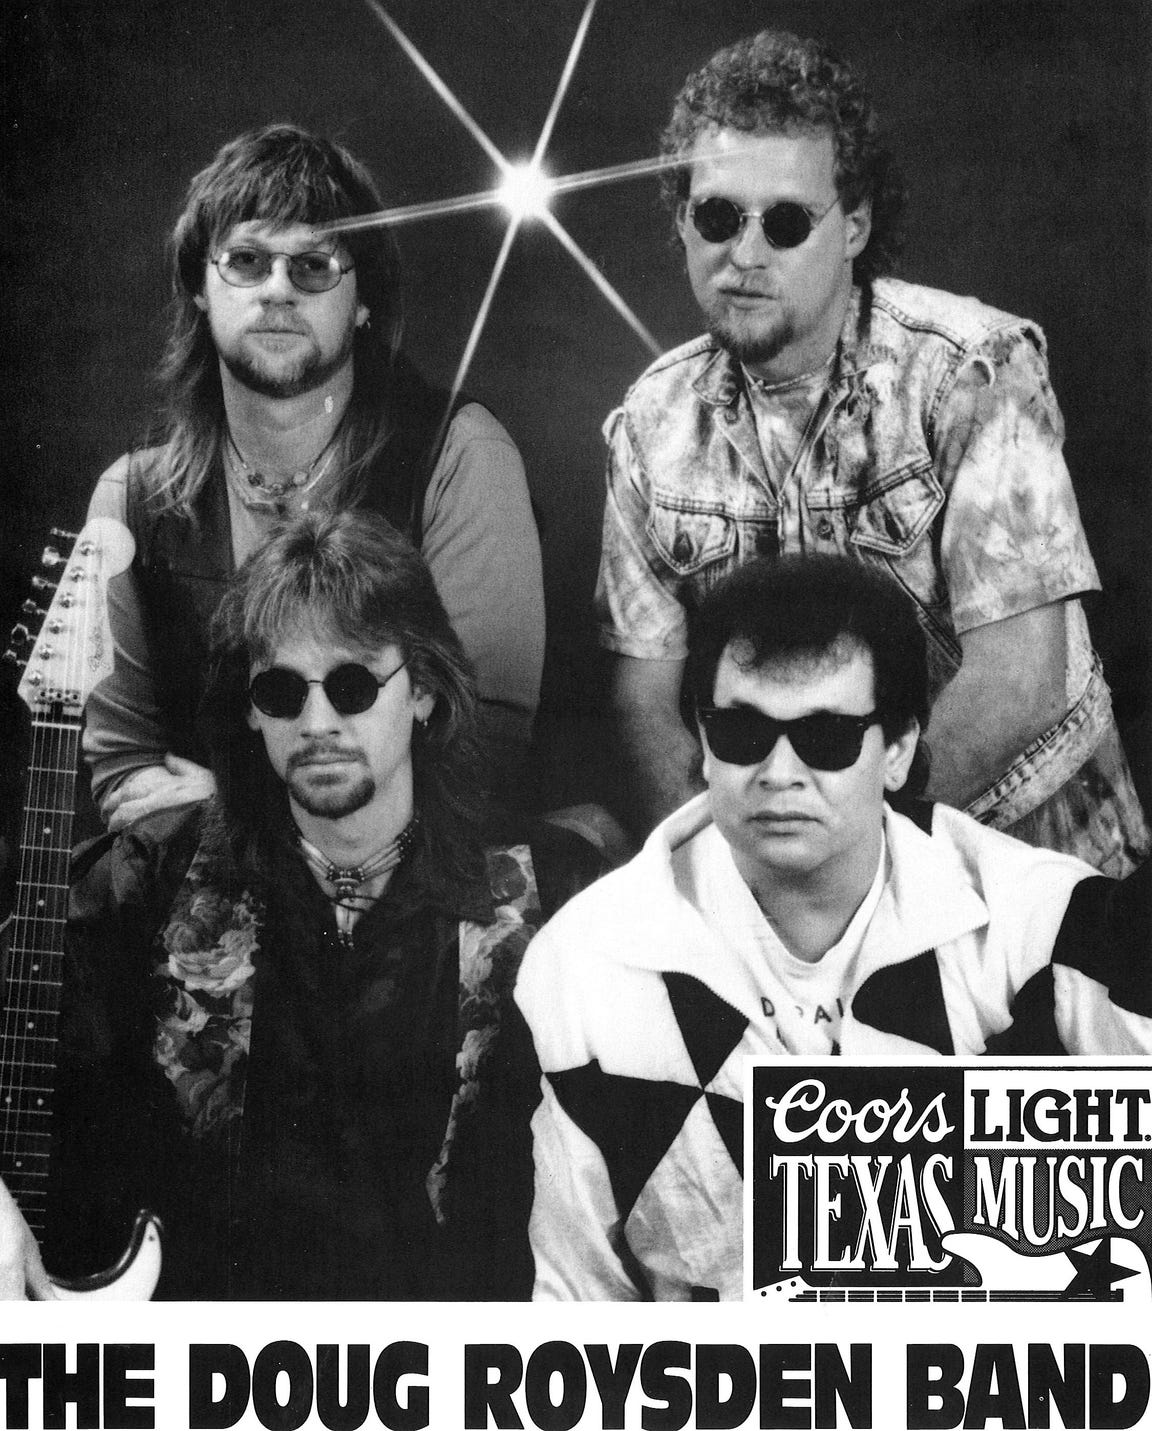 A later publicity photo for DRB shows the guys in shades and three with facial hair. Clockwise from lower left are Doug Roysden, Delbert McNeill, Steve Couch and Cecil Tijerina.